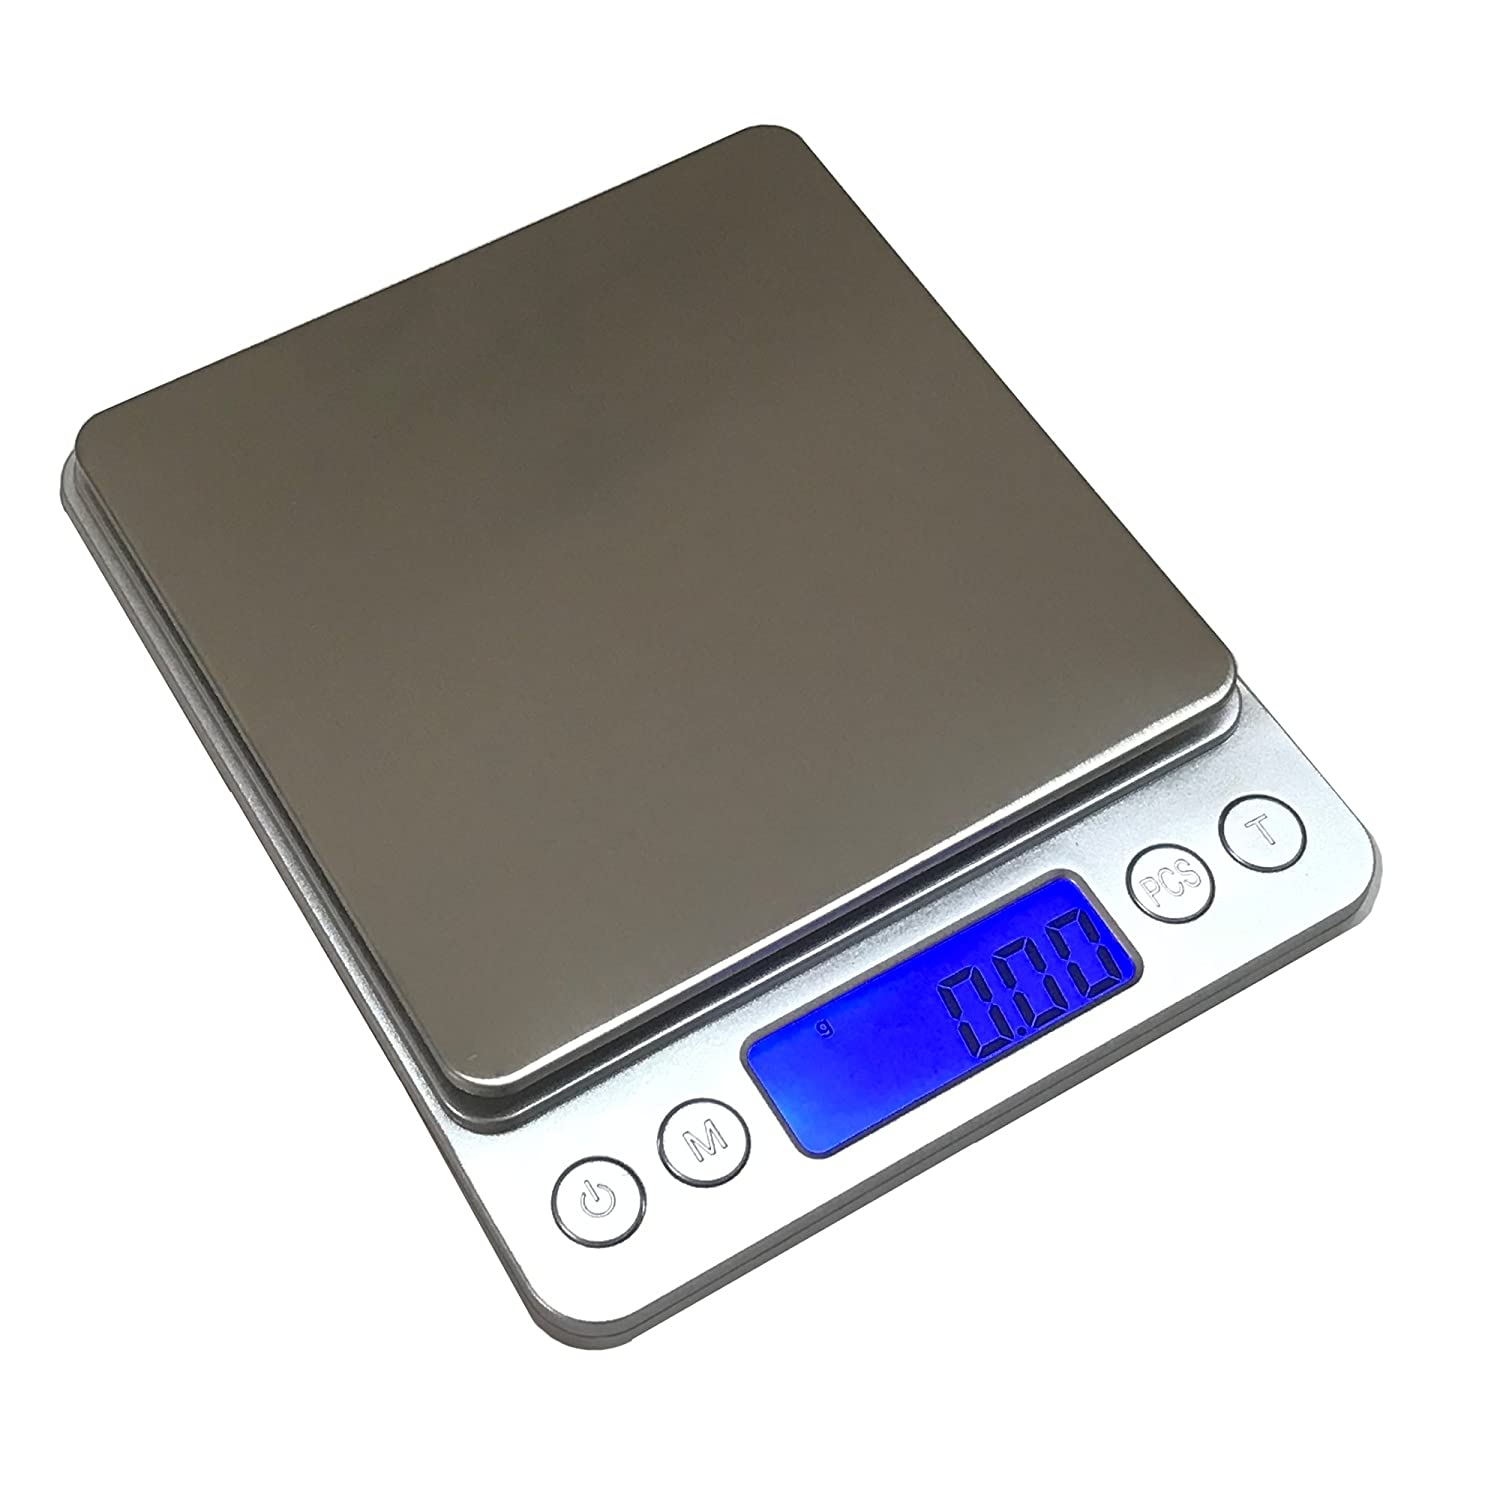 TACLKA Kitchen Scale, 500 x 0.01g Digital Scale, High-precision Pocket Food Scale, Multifunctional Pro Scale with Back-Lit LCD Display, Tare, PCS Features, Stainless Steel (Silver)